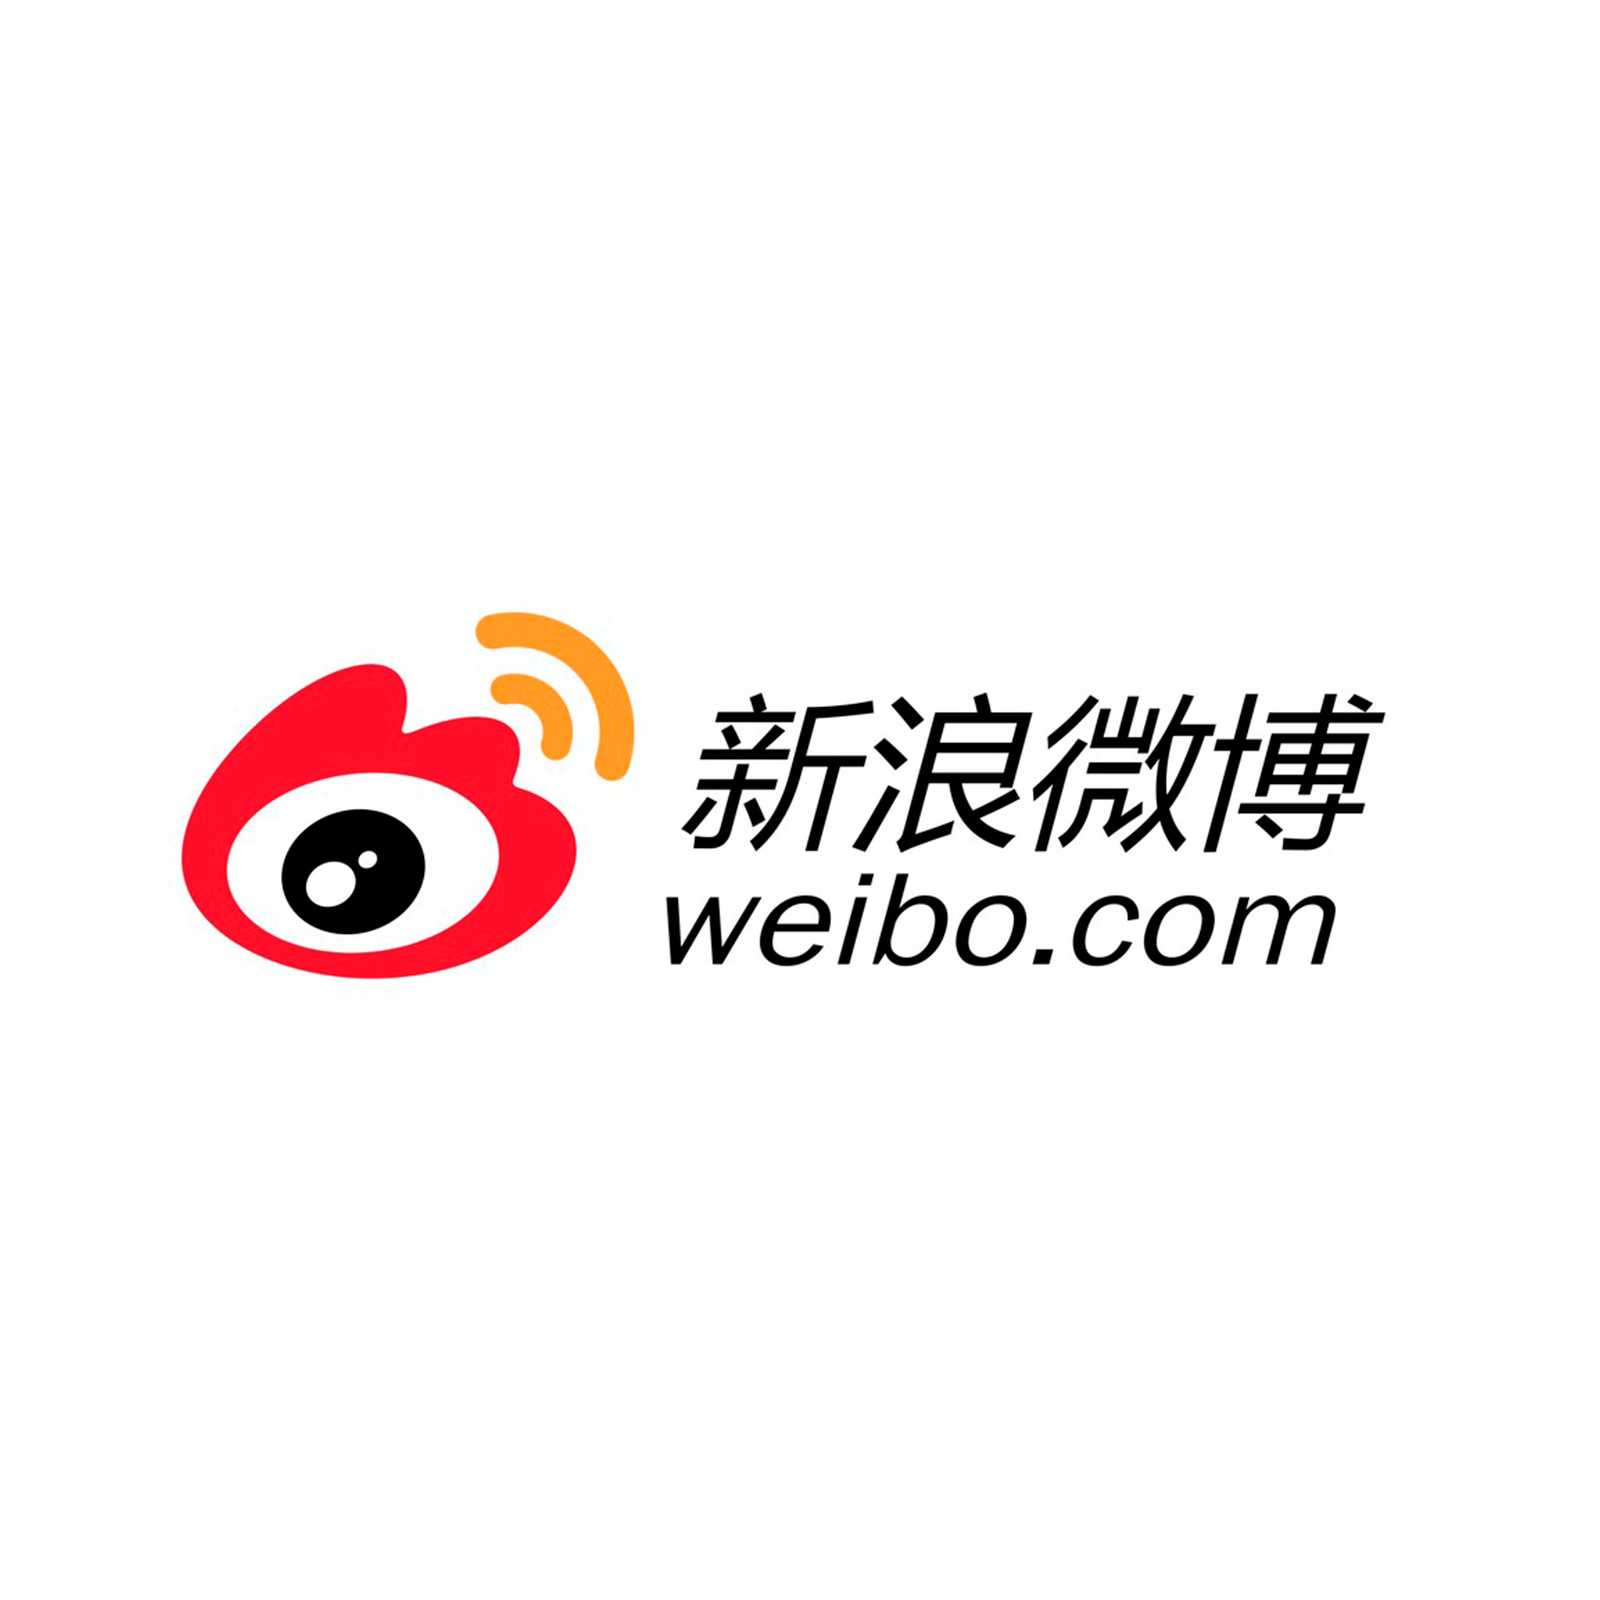 Chinese microbloggin website. A hybrid of Twitter and Facebook